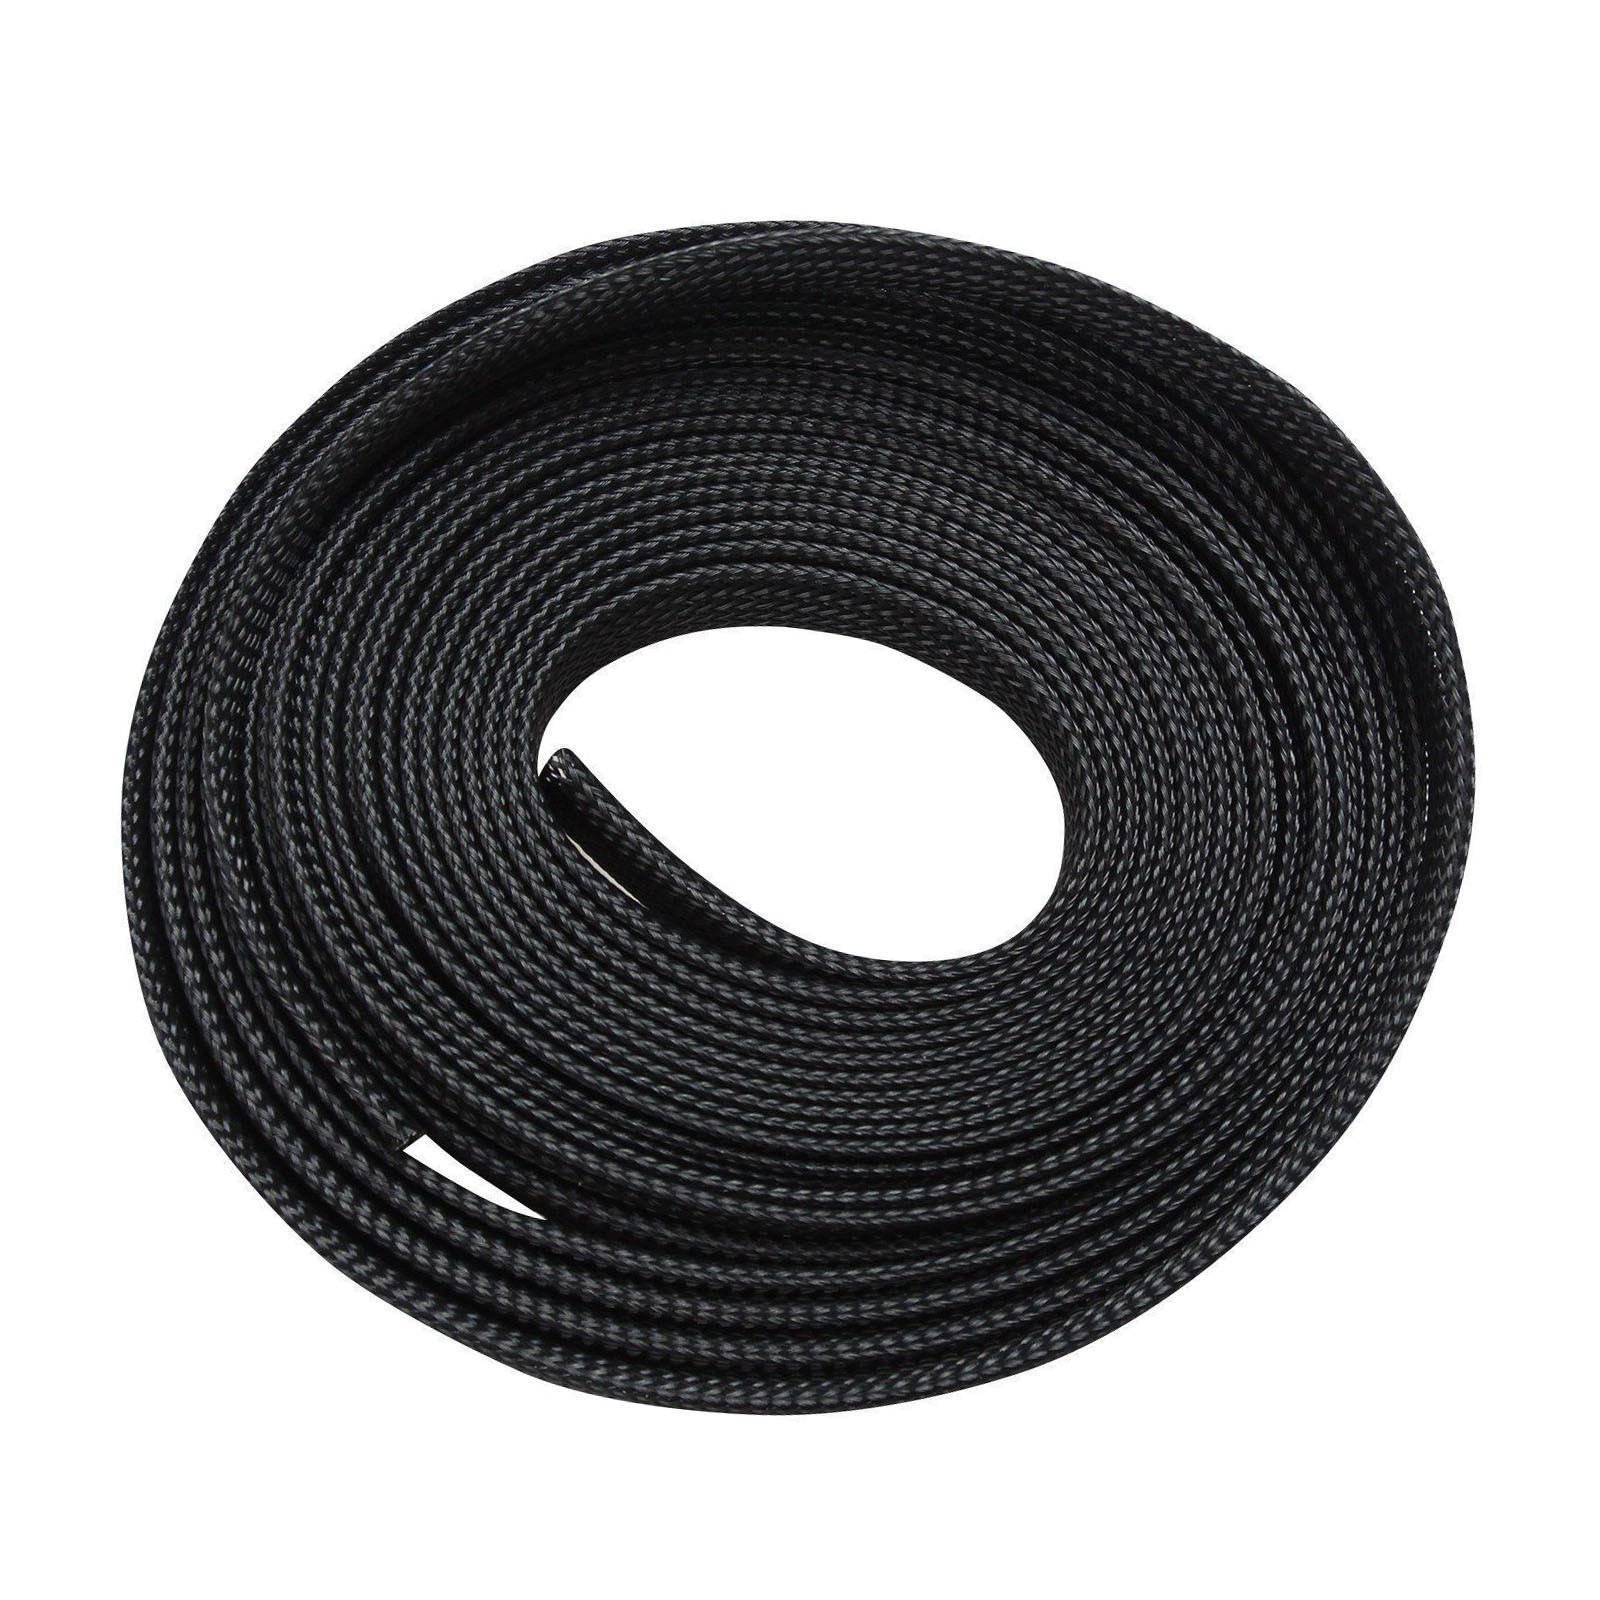 100 Feet 1/2 Expandable Wire Cable Sleeving Sheathing Braided Loom Tubing Black